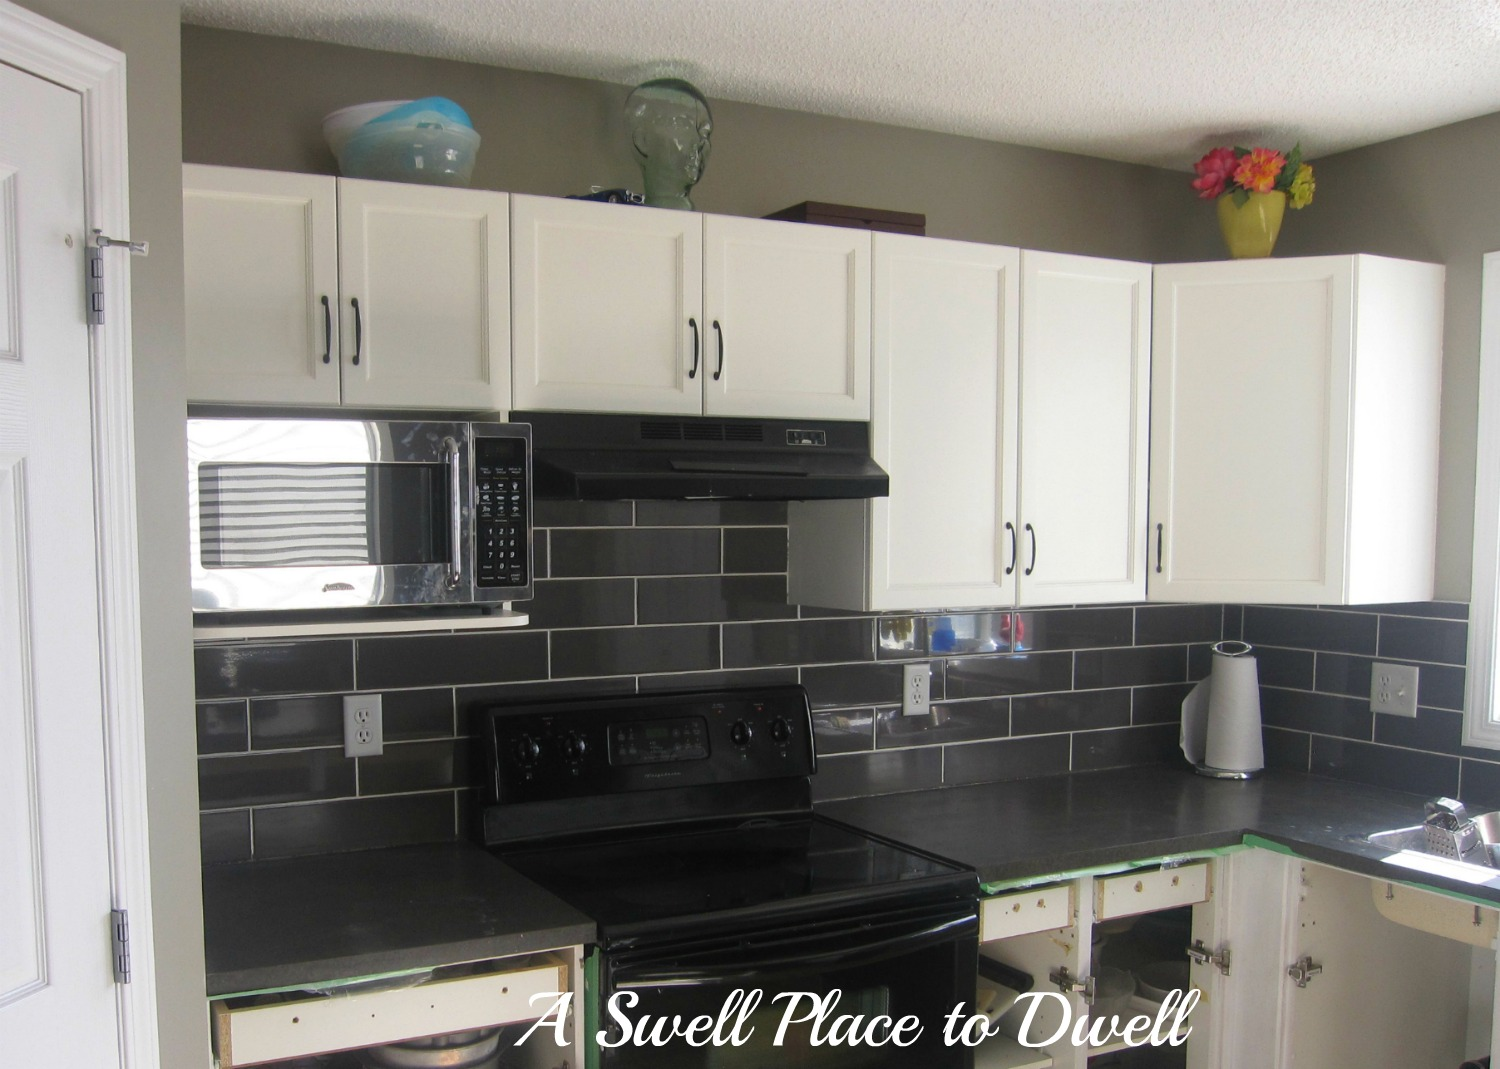 A Swell Place to Dwell: The Kitchen: Tile Backsplash